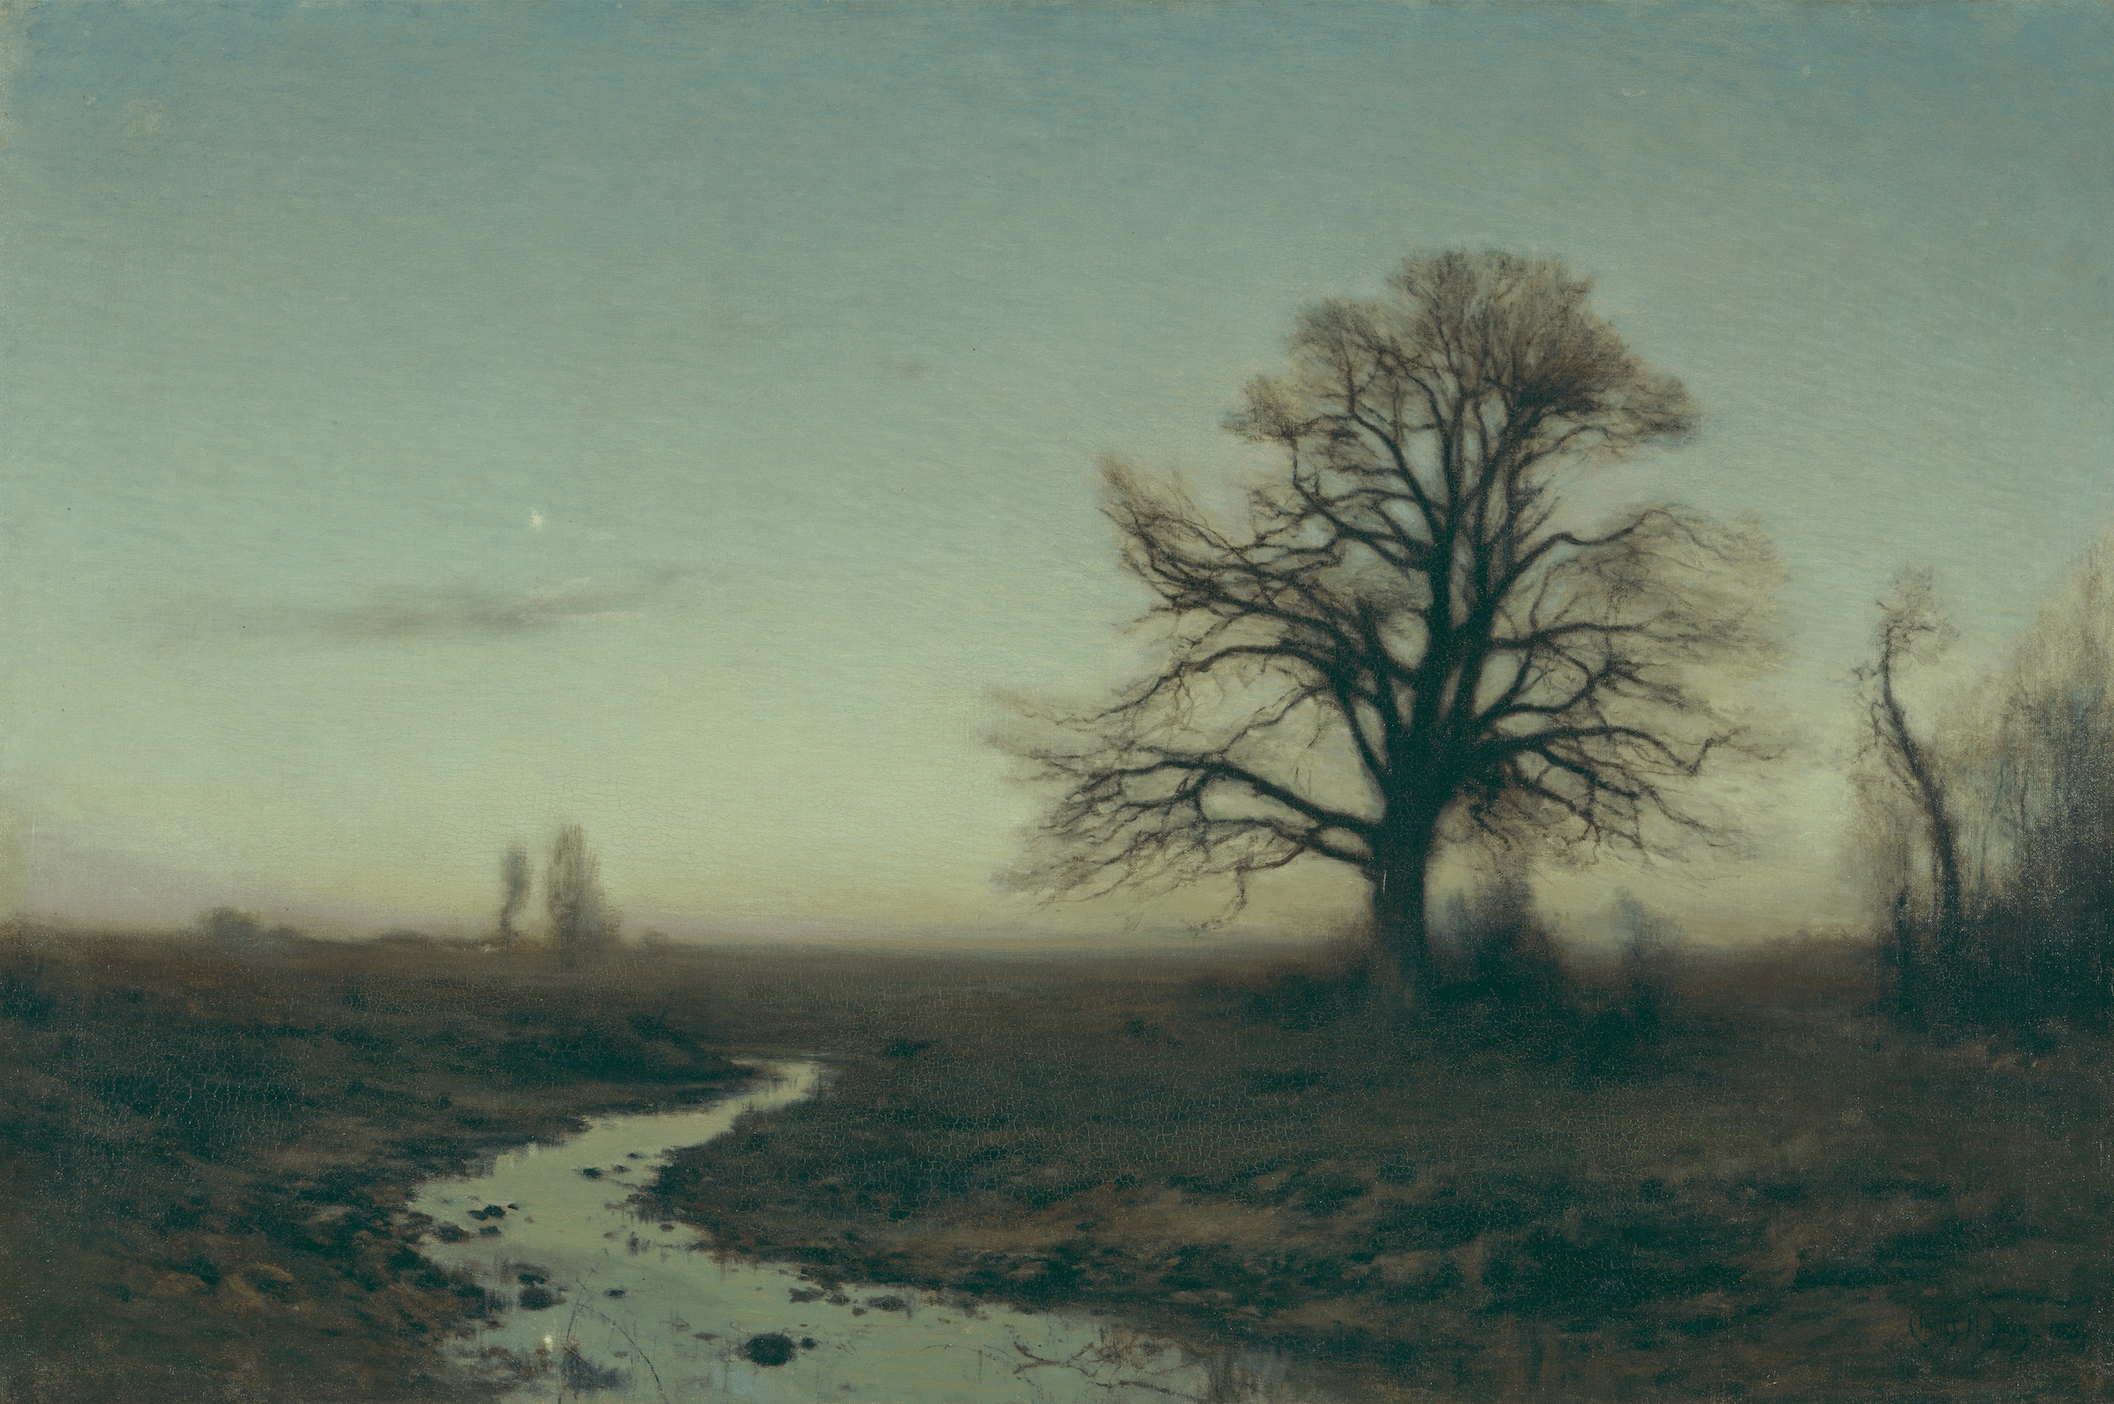 A landscape with a lonely tree on the right and river on the left.